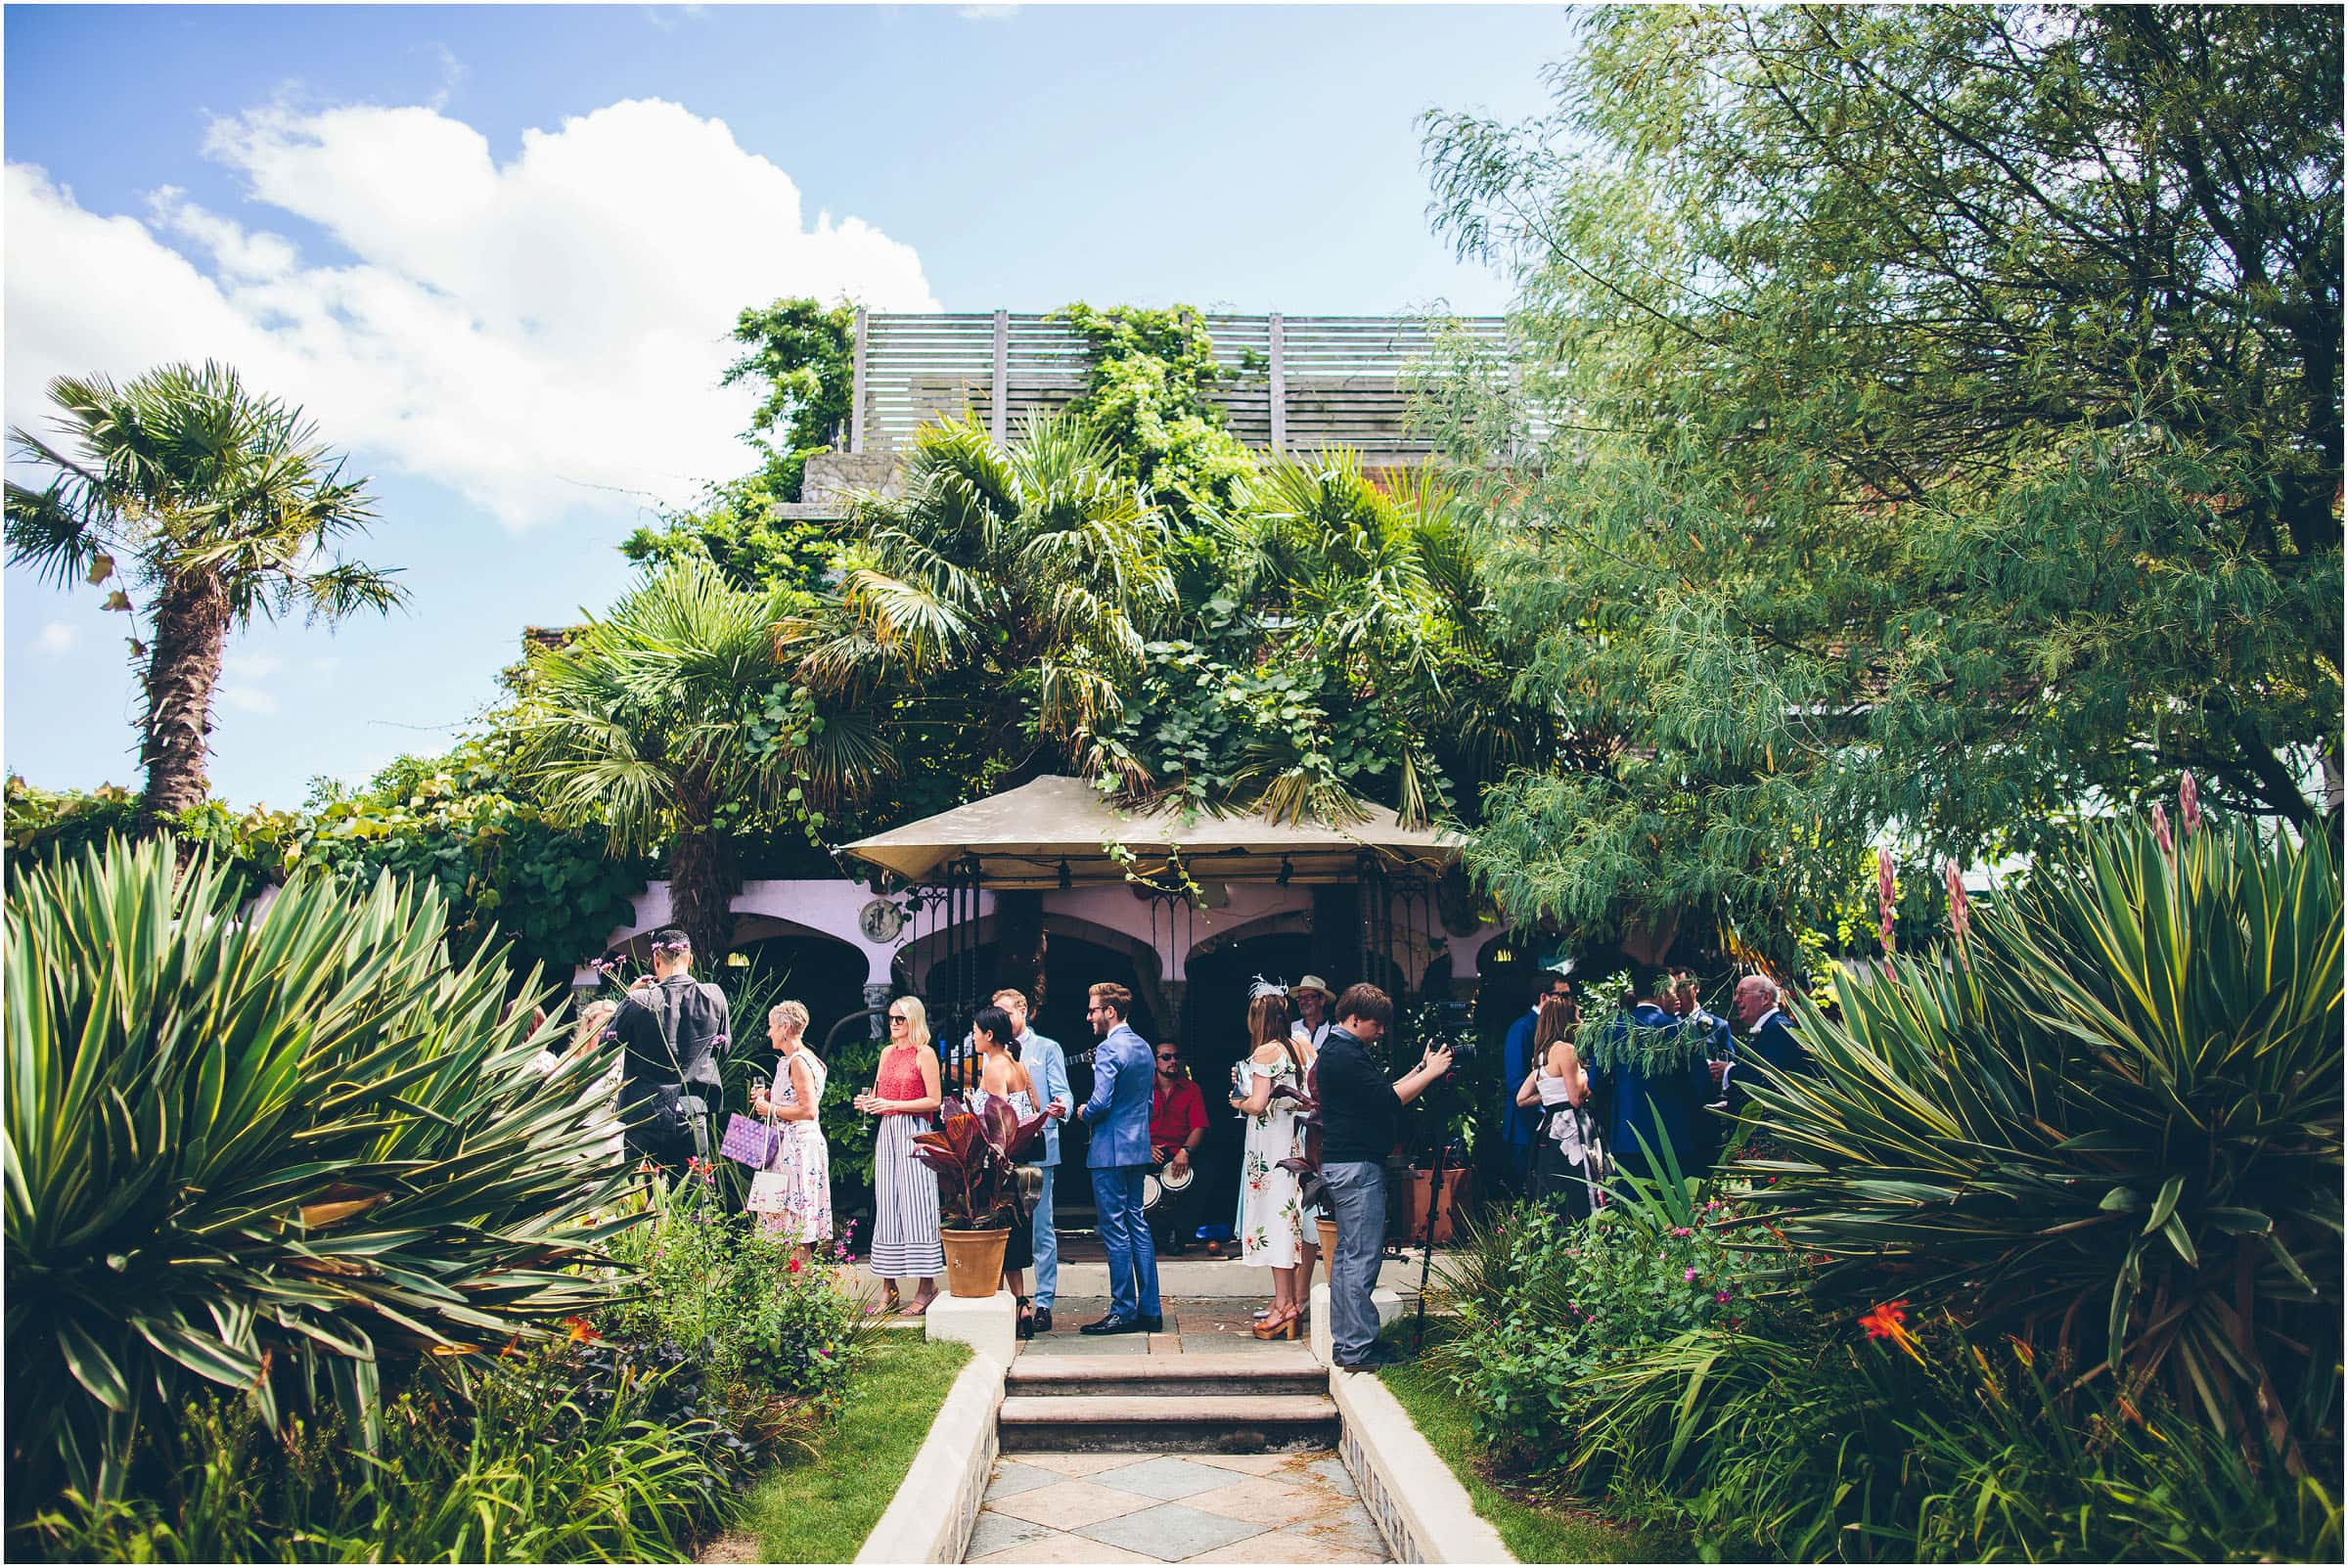 how to visit the kensington roof gardens